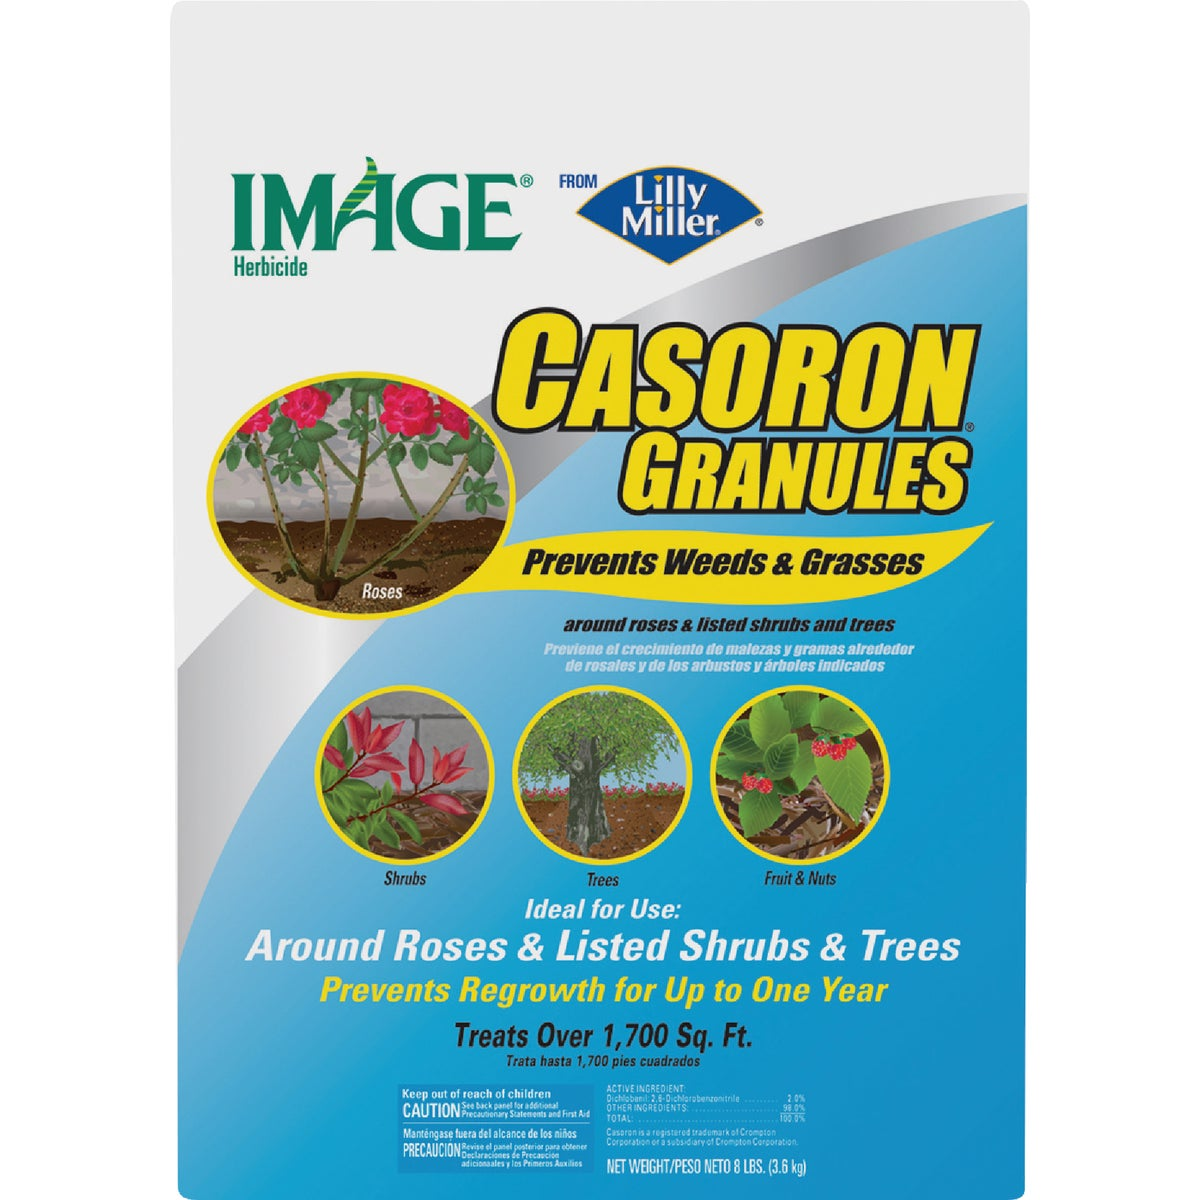 8LB CASORON GRANULES - 100505475 by Excel Marketing